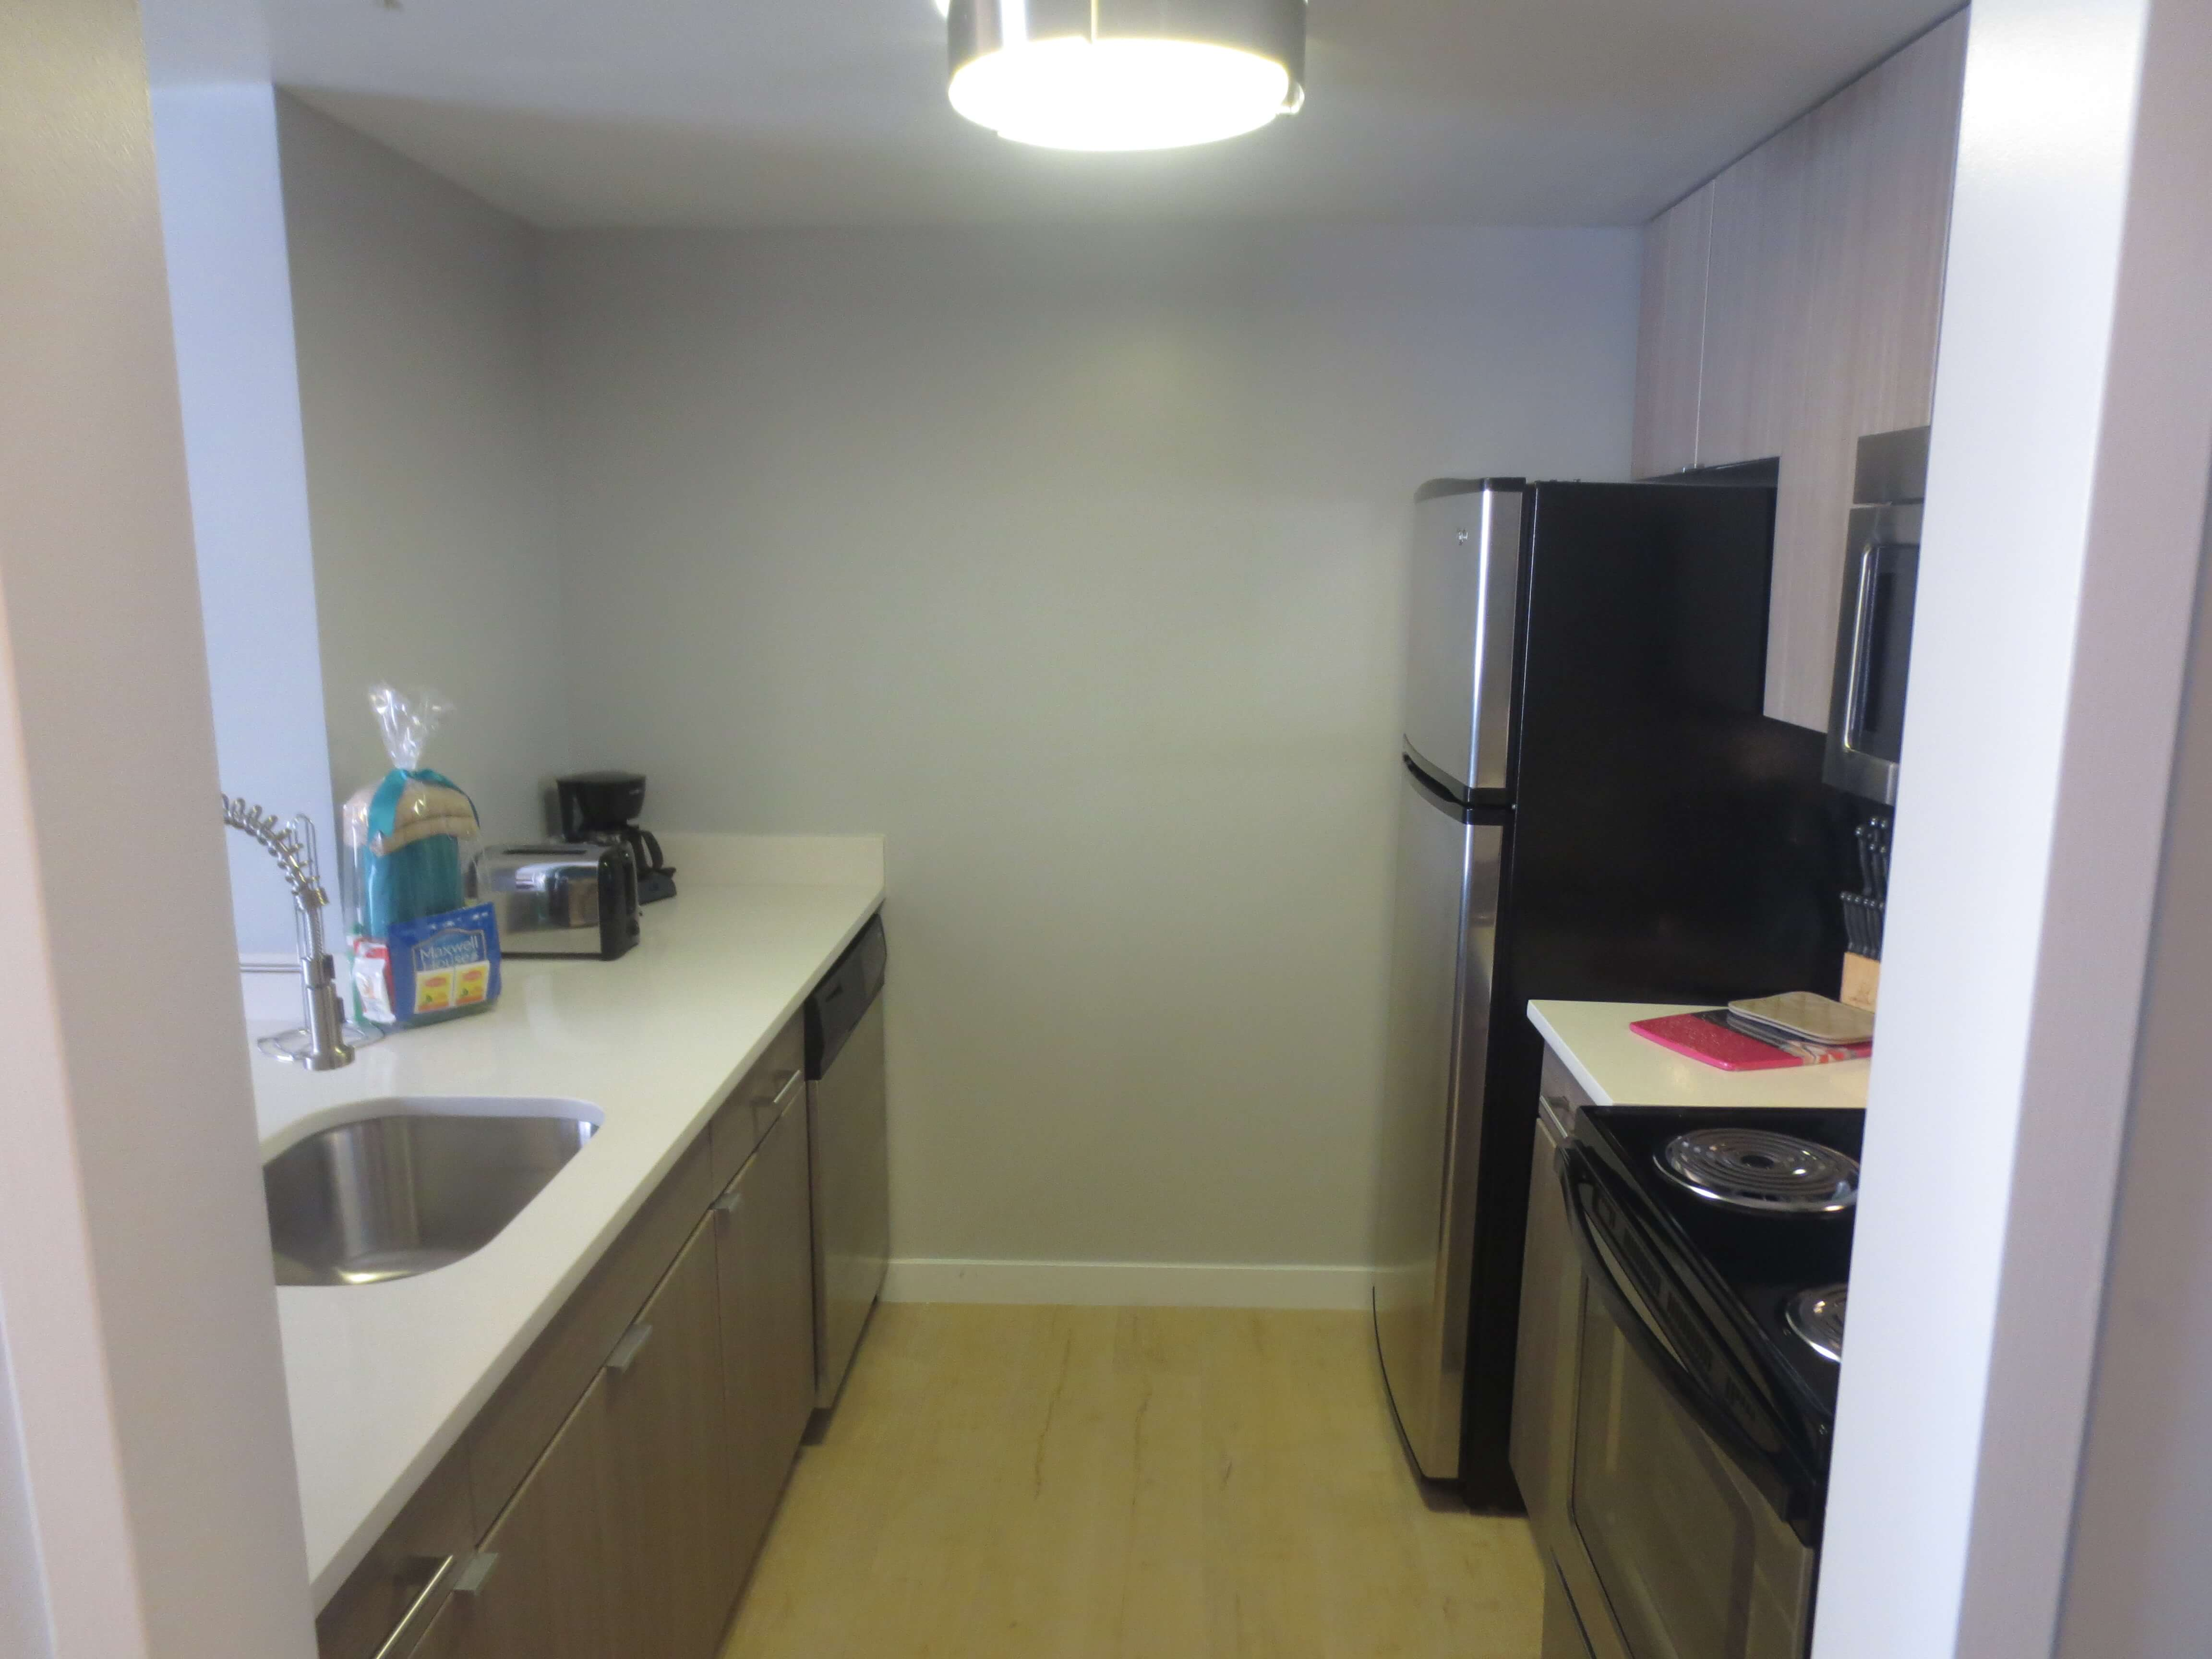 image 4 furnished 1 bedroom Apartment for rent in Morristown, Morris County